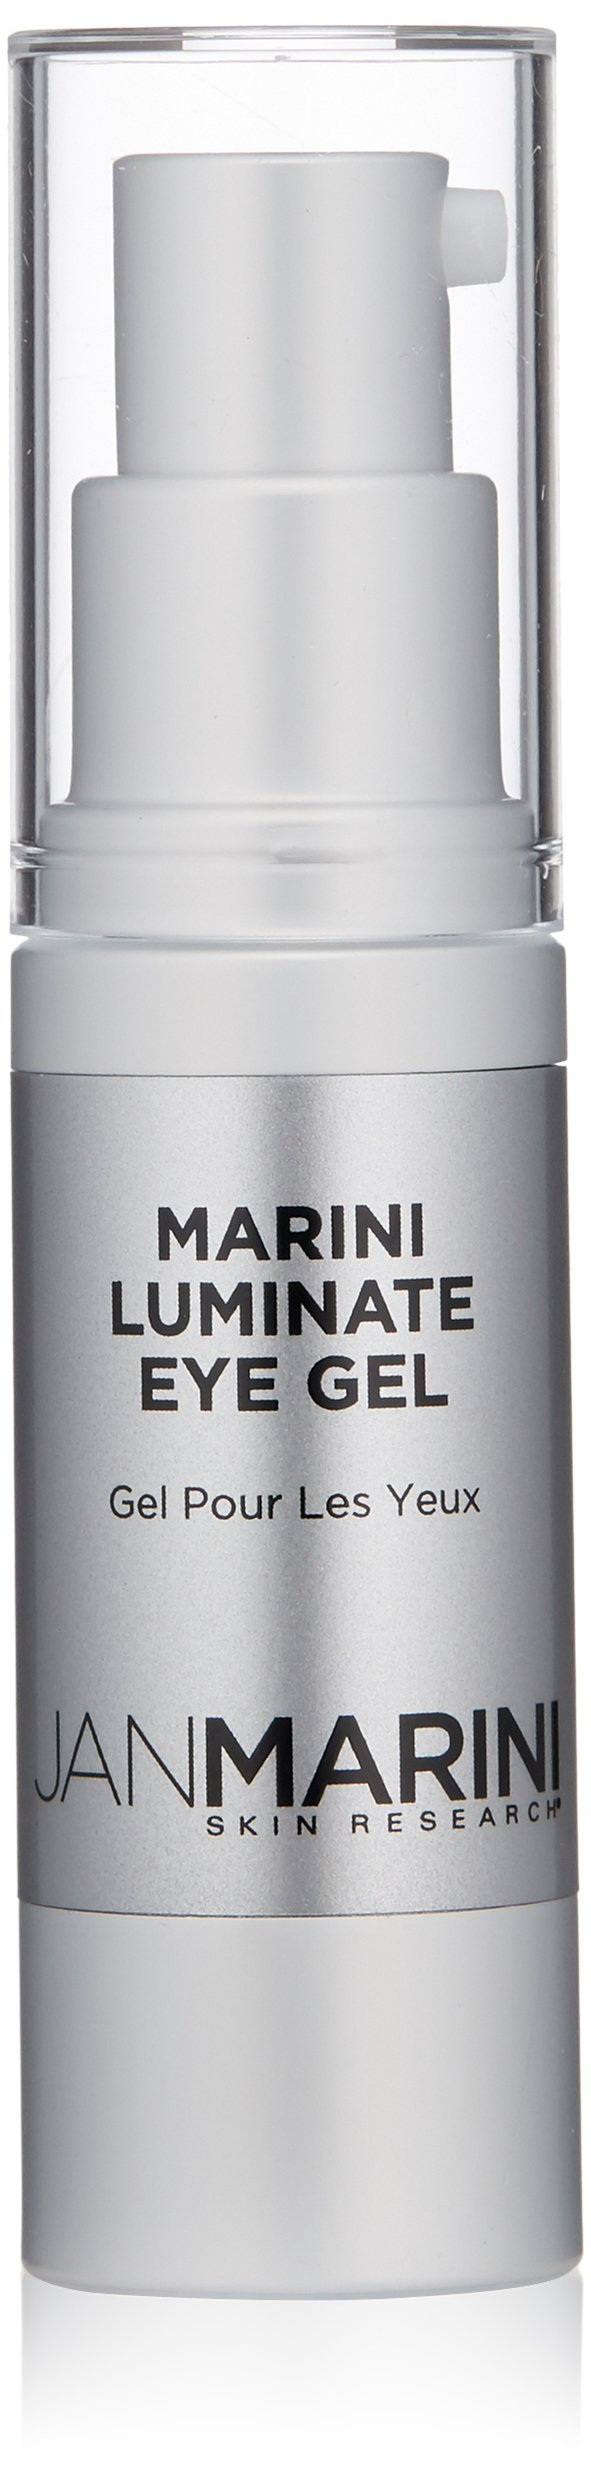 Jan Marini Skin Research Marini Luminate Eye Gel, 0.5 fl. oz. by Jan Marini Skin Research